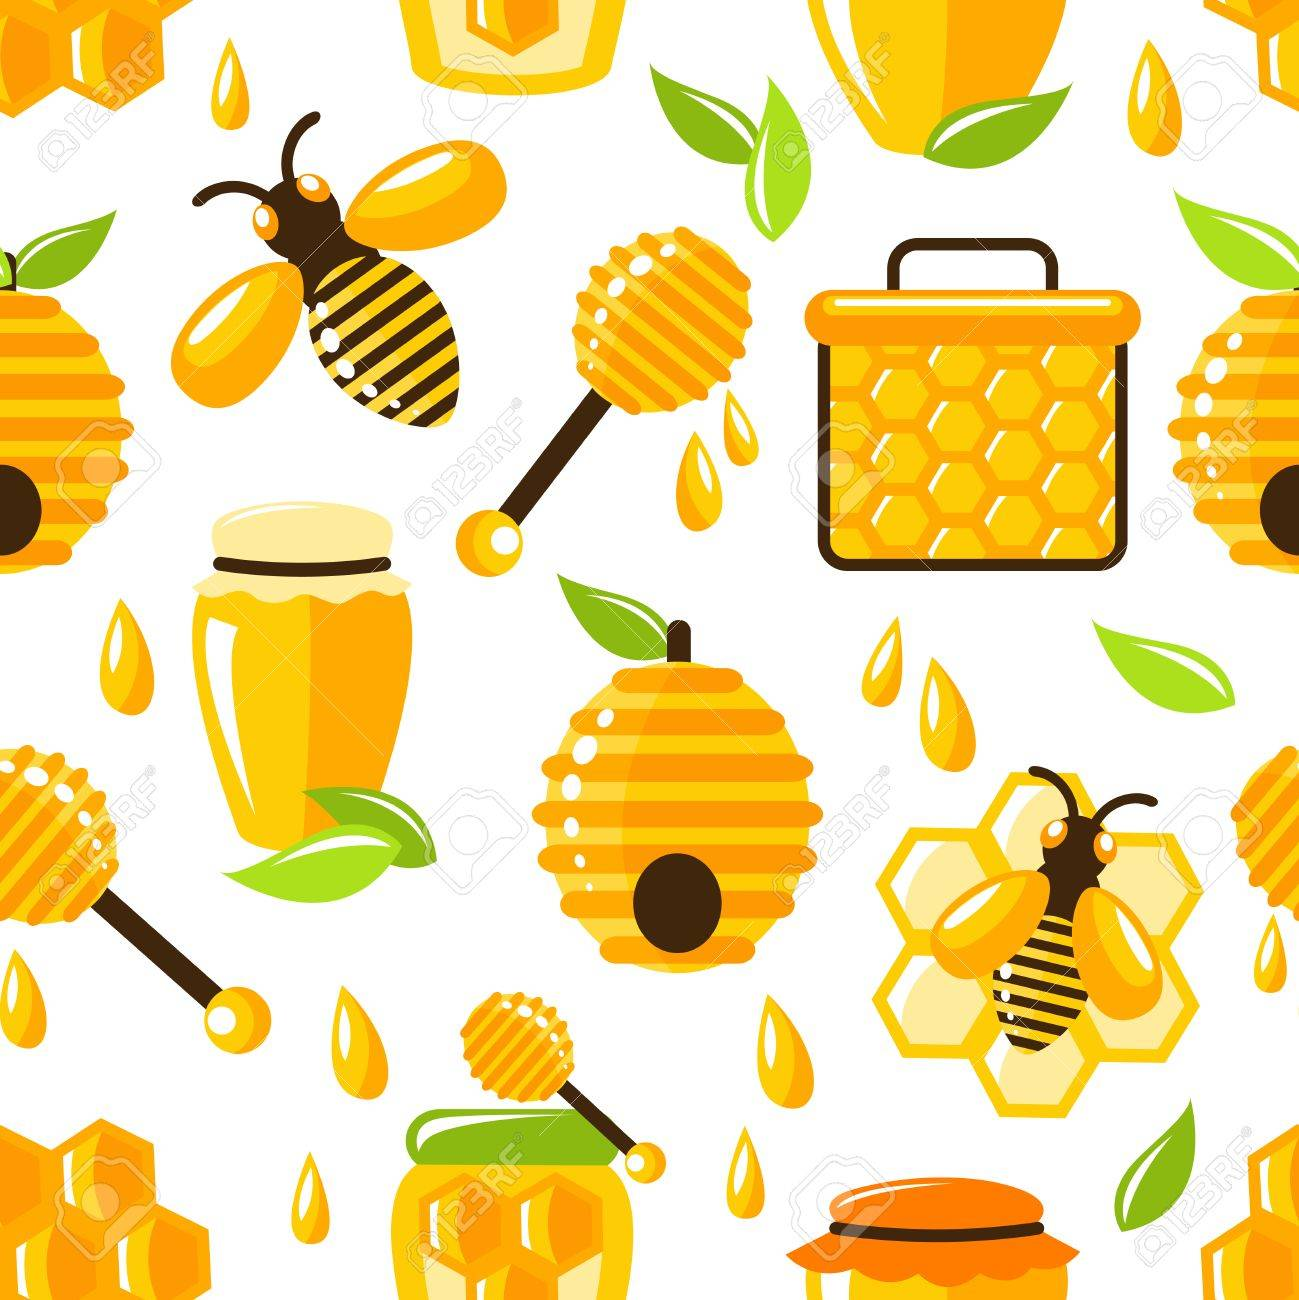 Decorative Honey Bee Hive And Cell Food Seamless Pattern Vector Illustration Stock